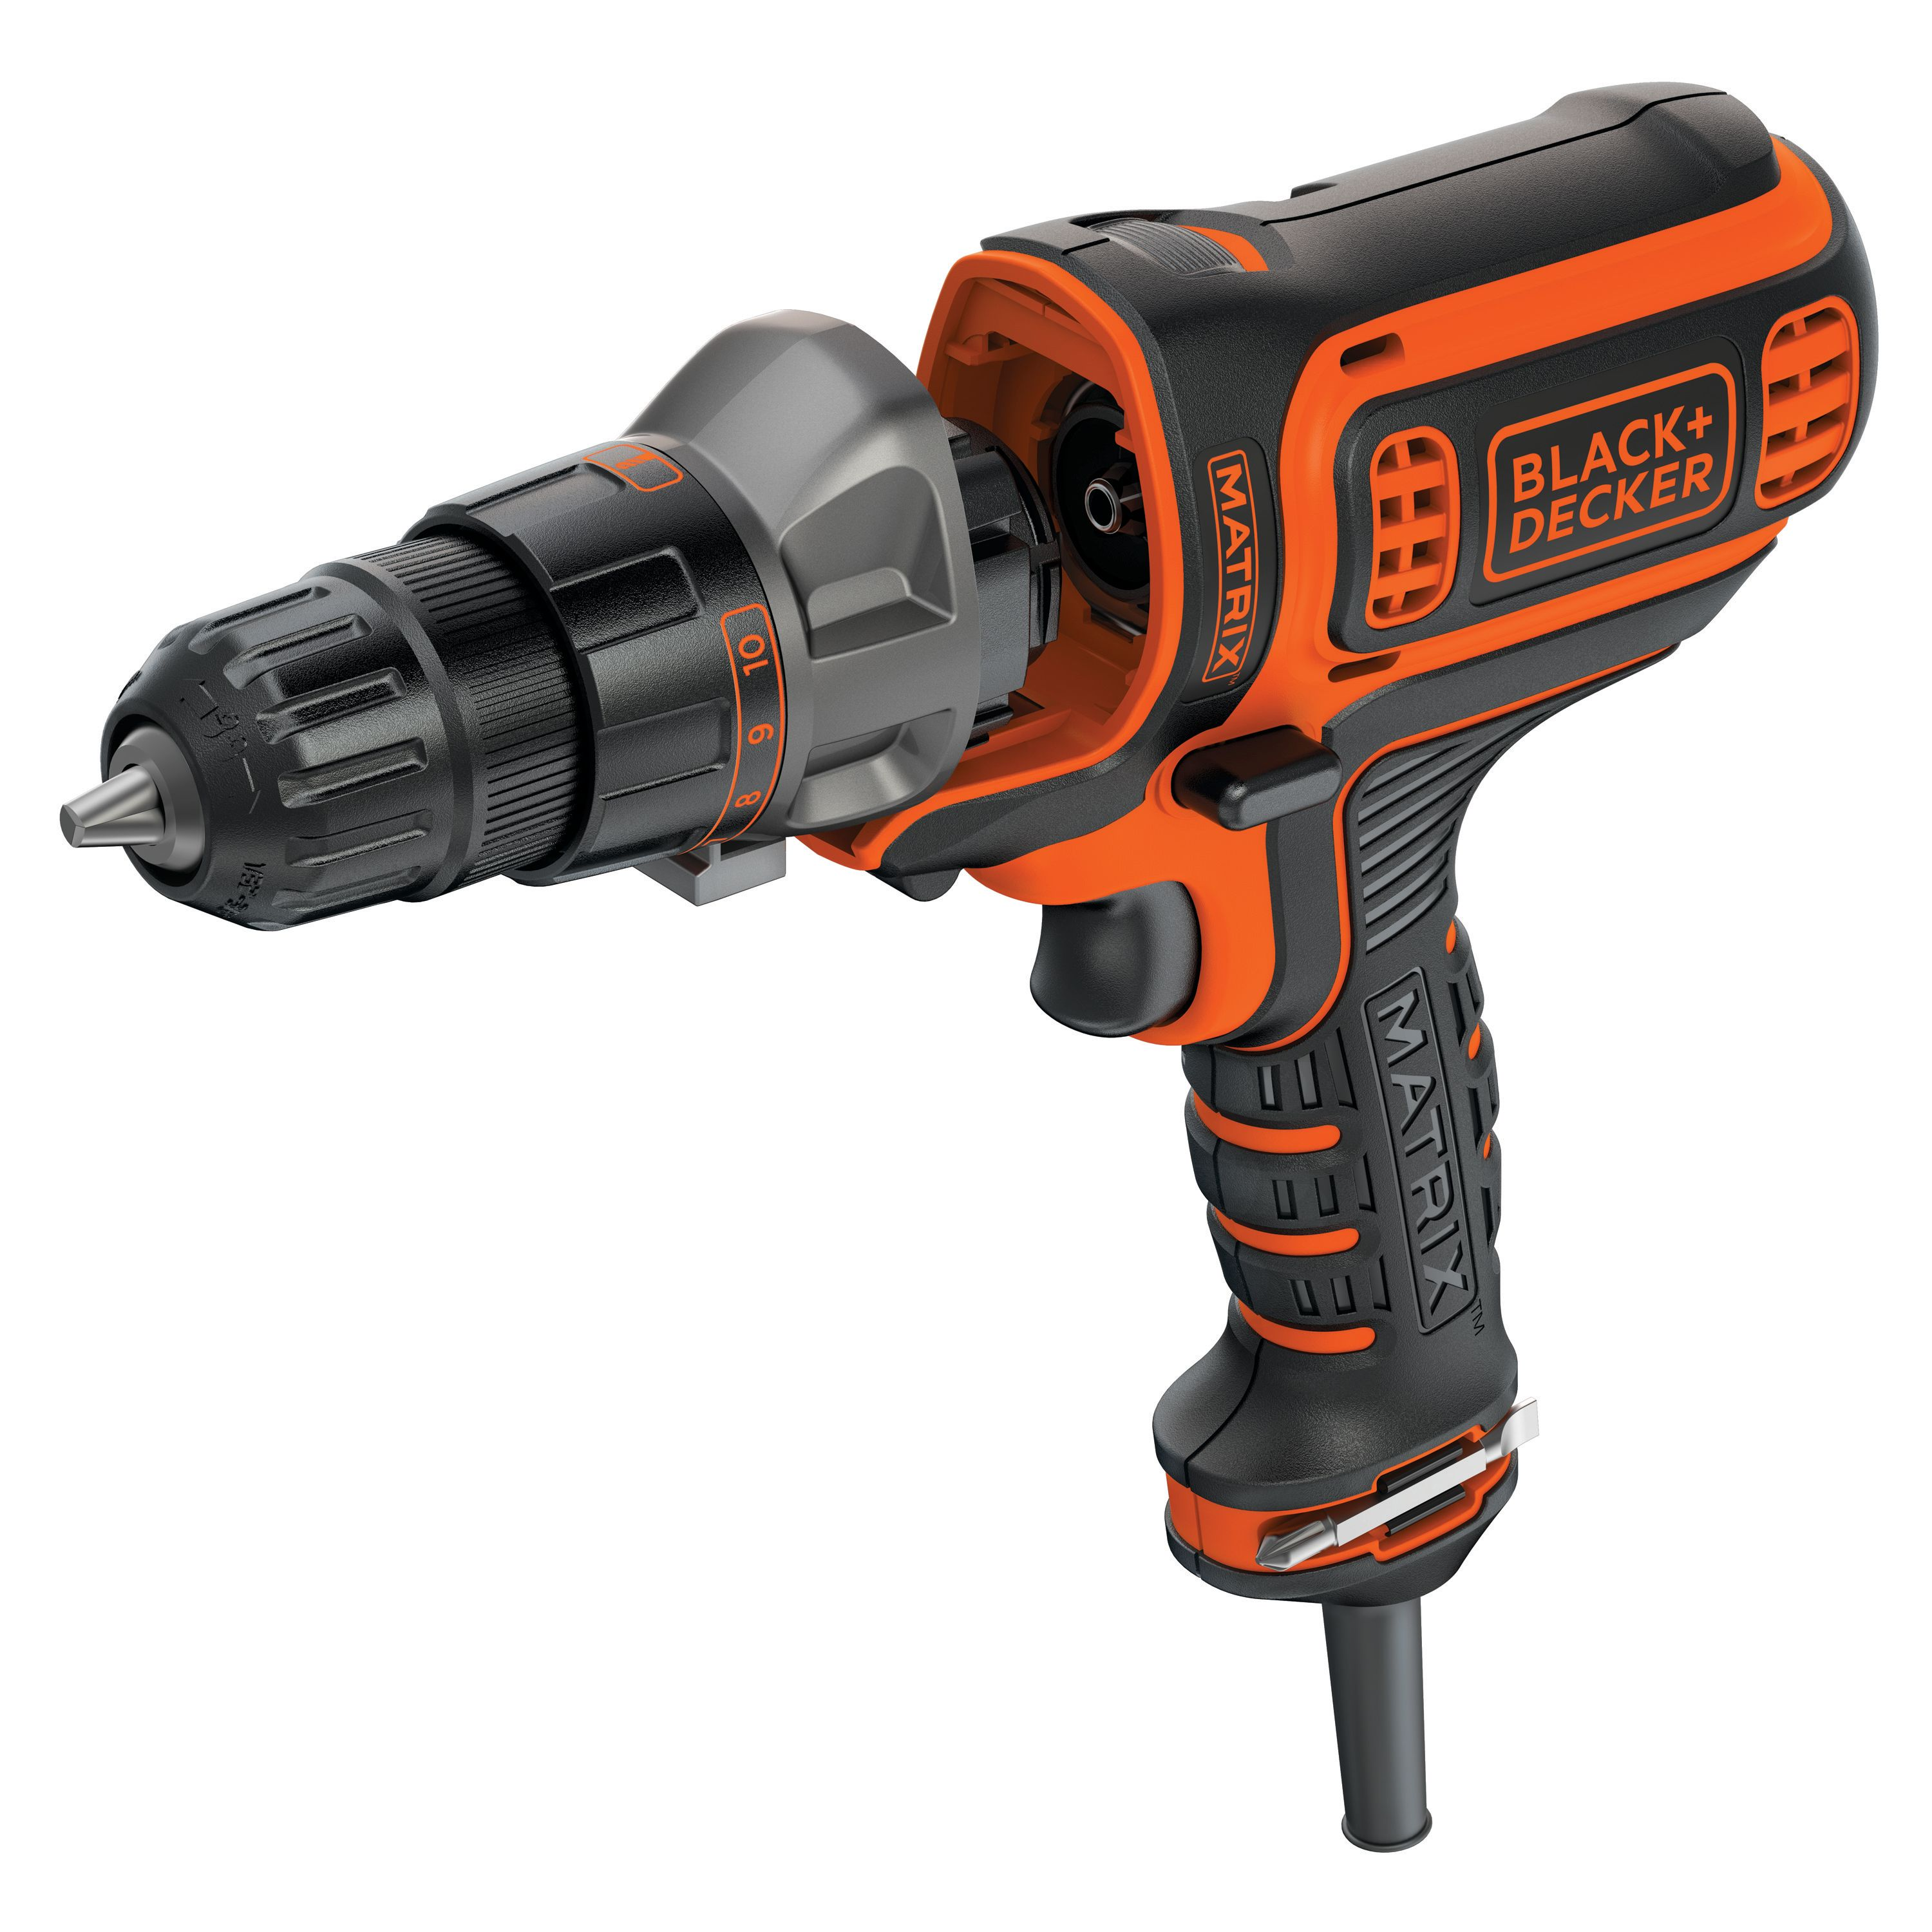 "BLACK+DECKER BDEDMT 3/8"" Corded MATRIX Drill/Driver"